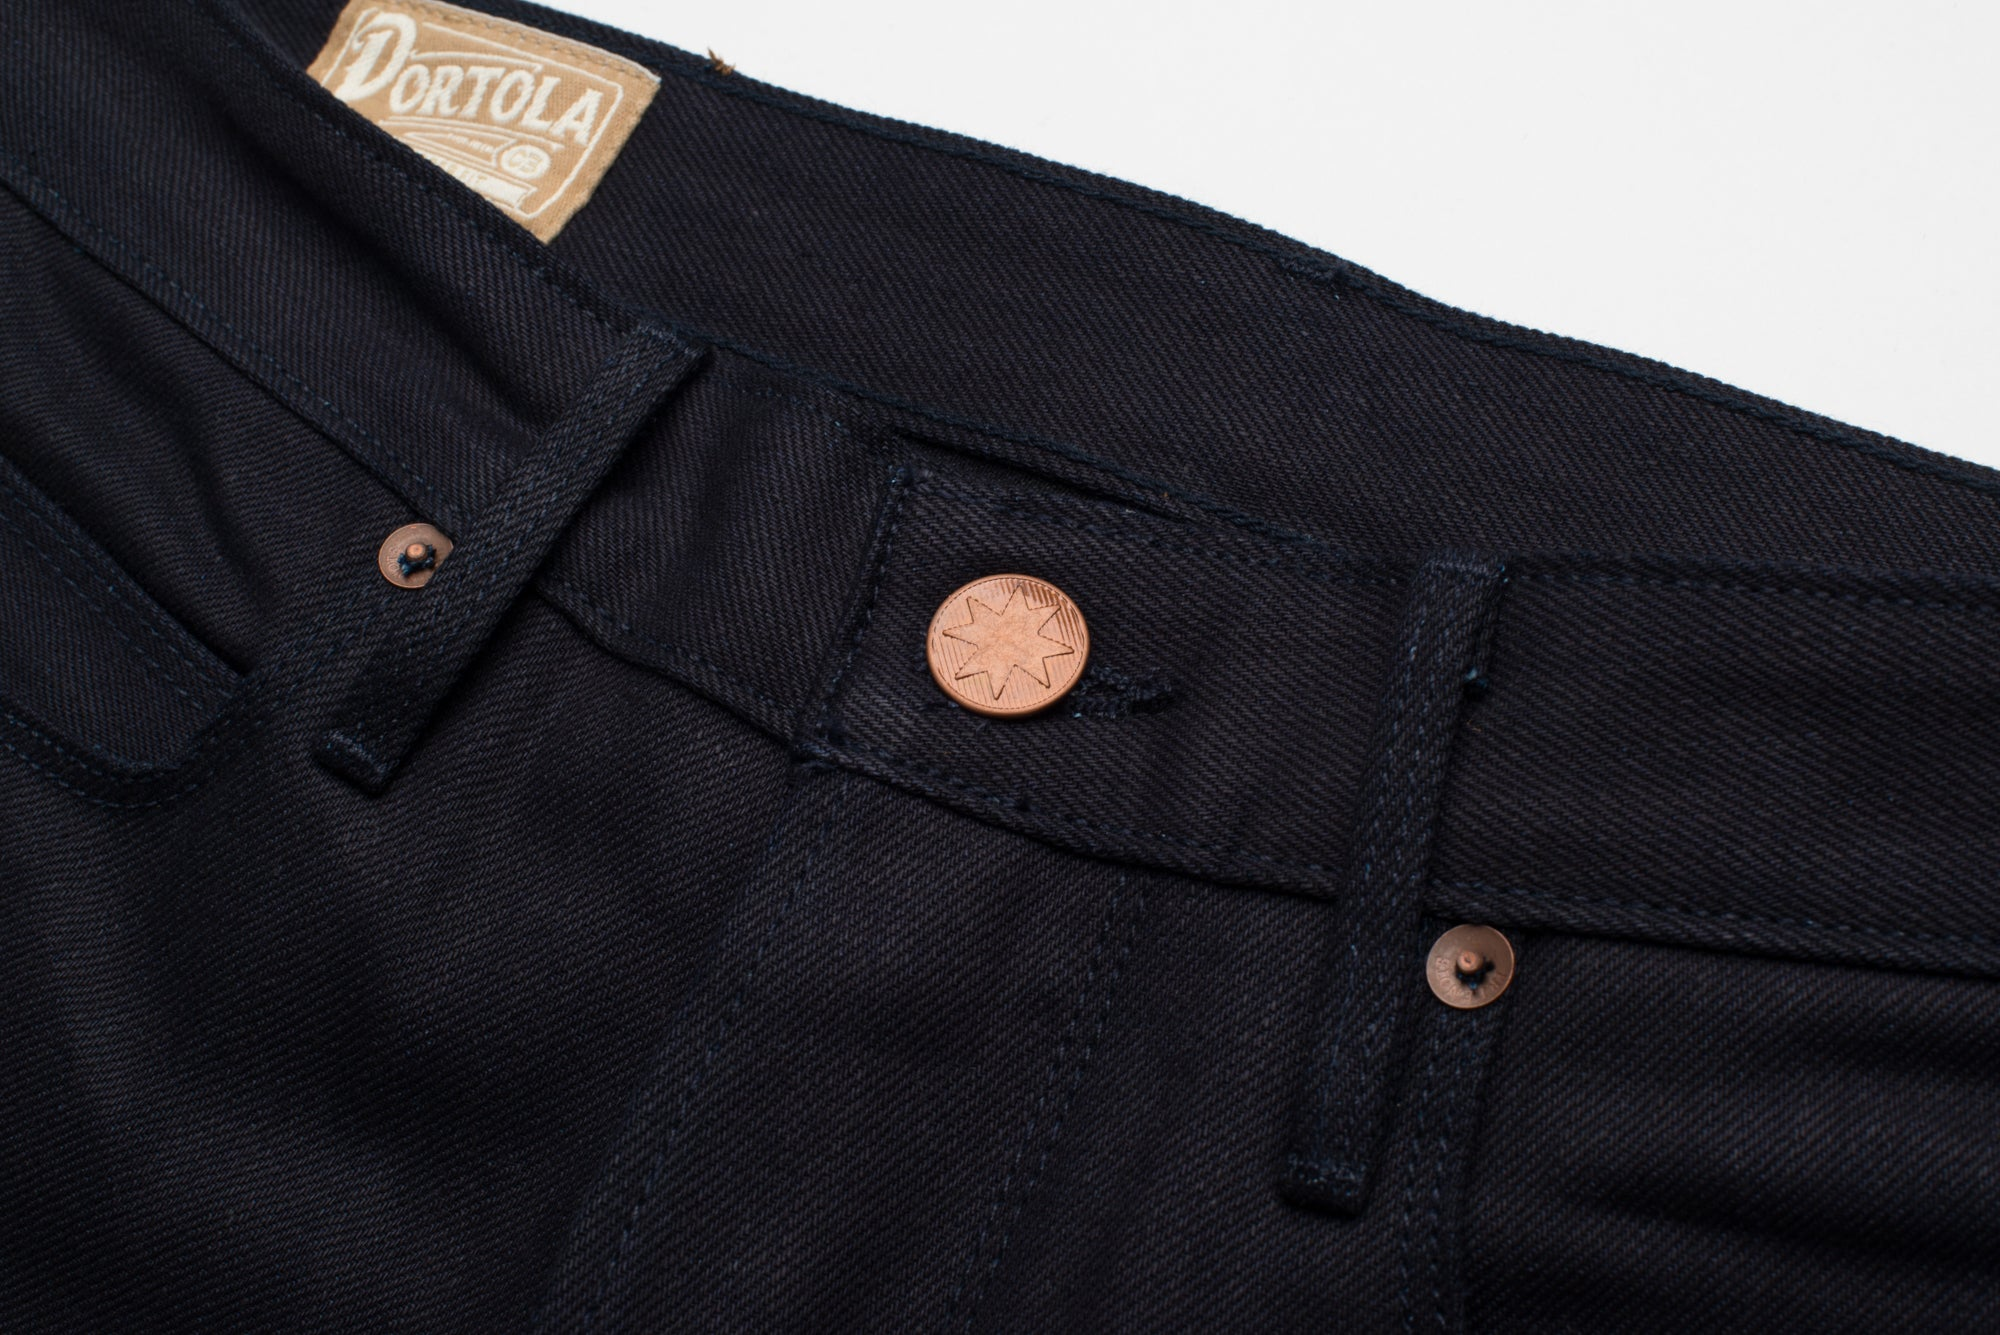 Portola 14.75 oz Blue Black Japanese Denim Front Button